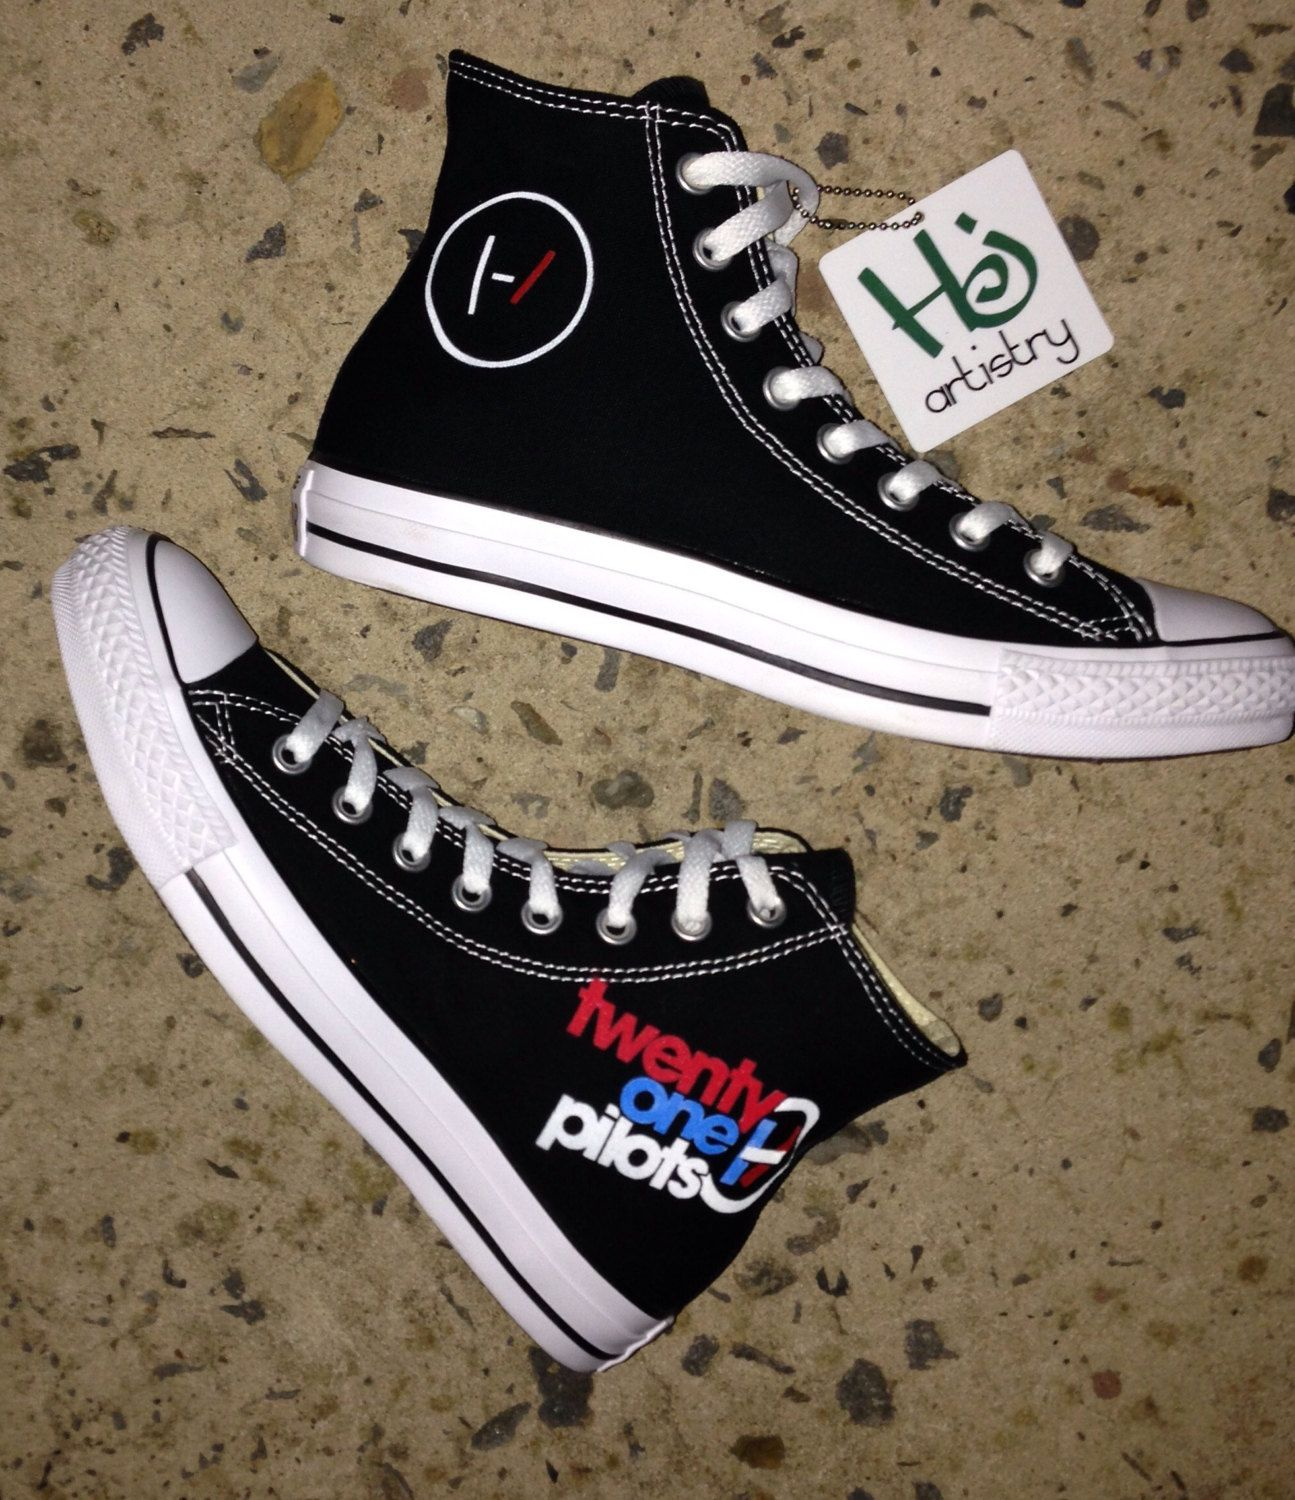 Twenty One Pilots Converse Shoes. TOP Shoes by HJArtistry on